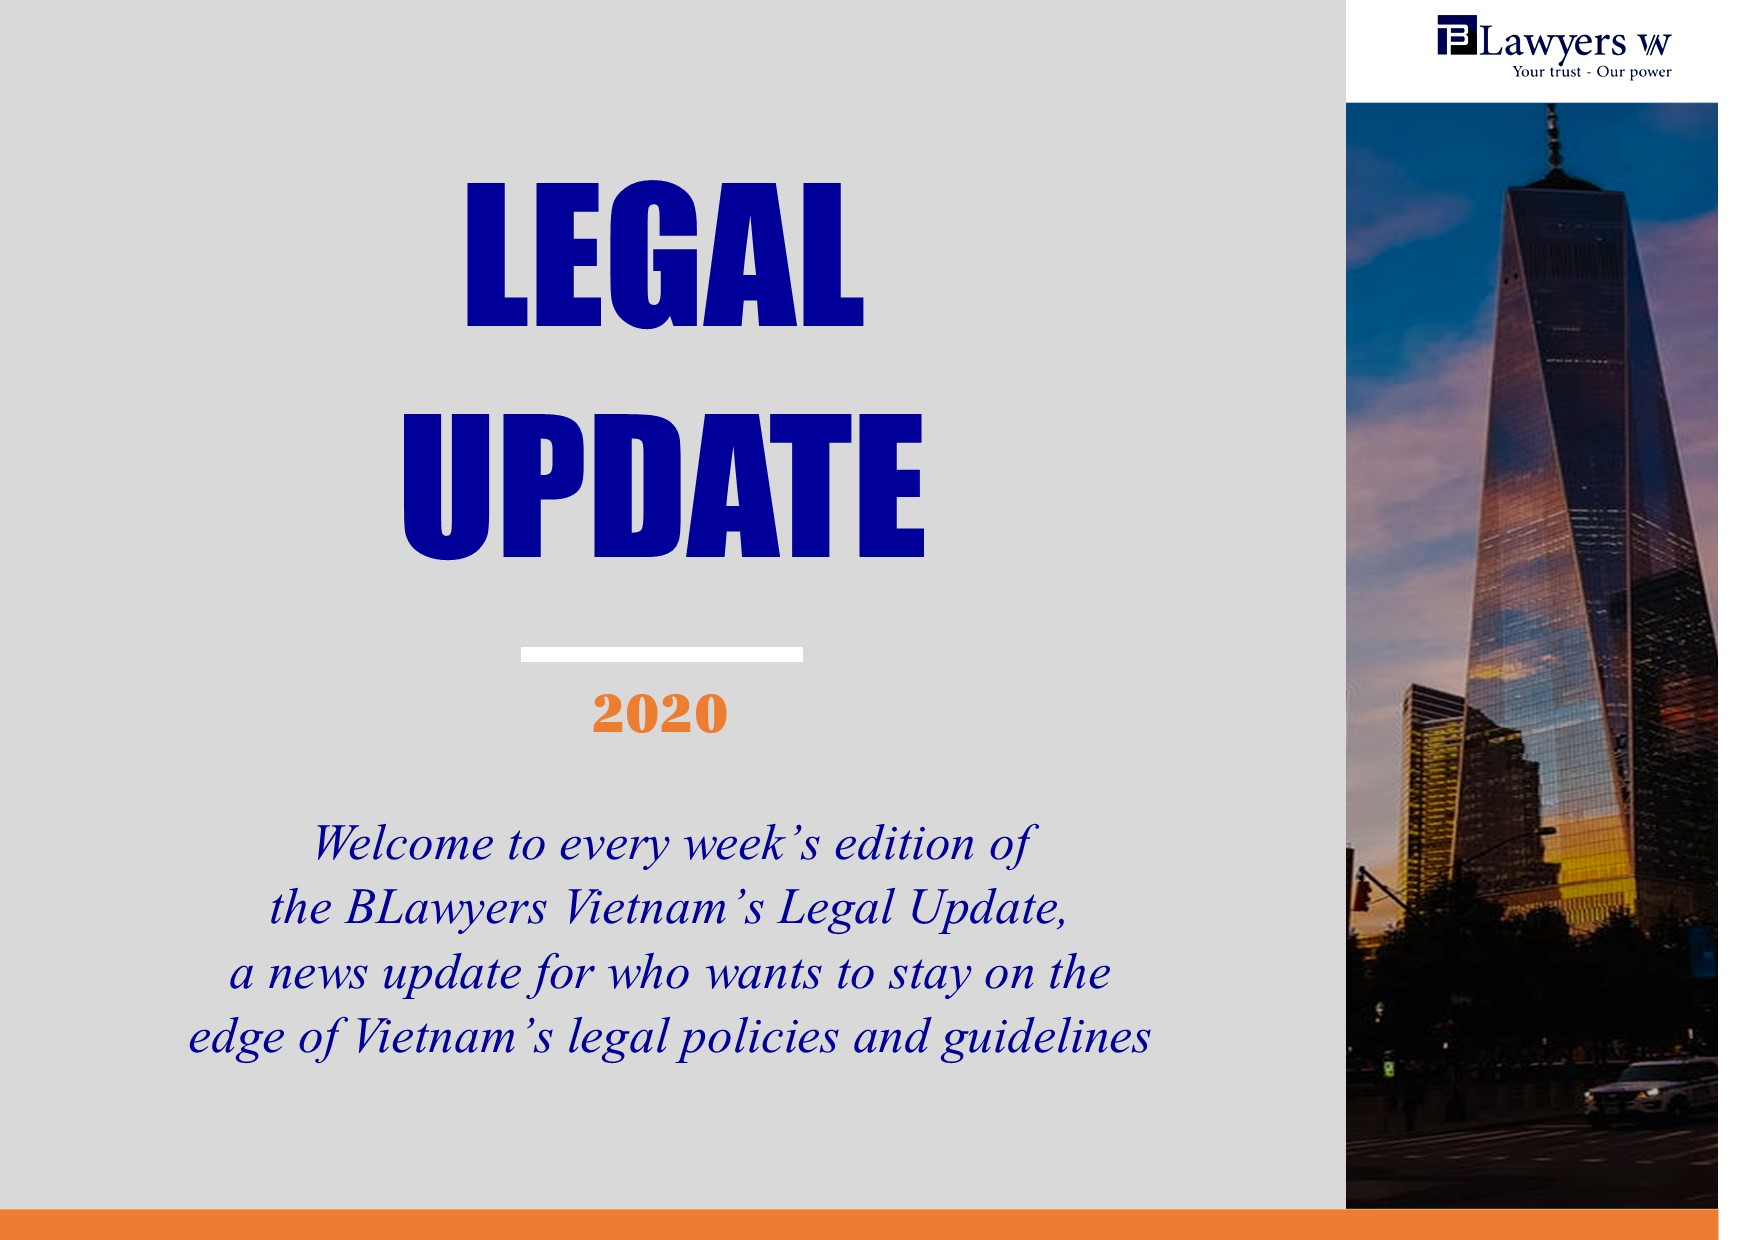 Legal updates of BLawyers Vietnam